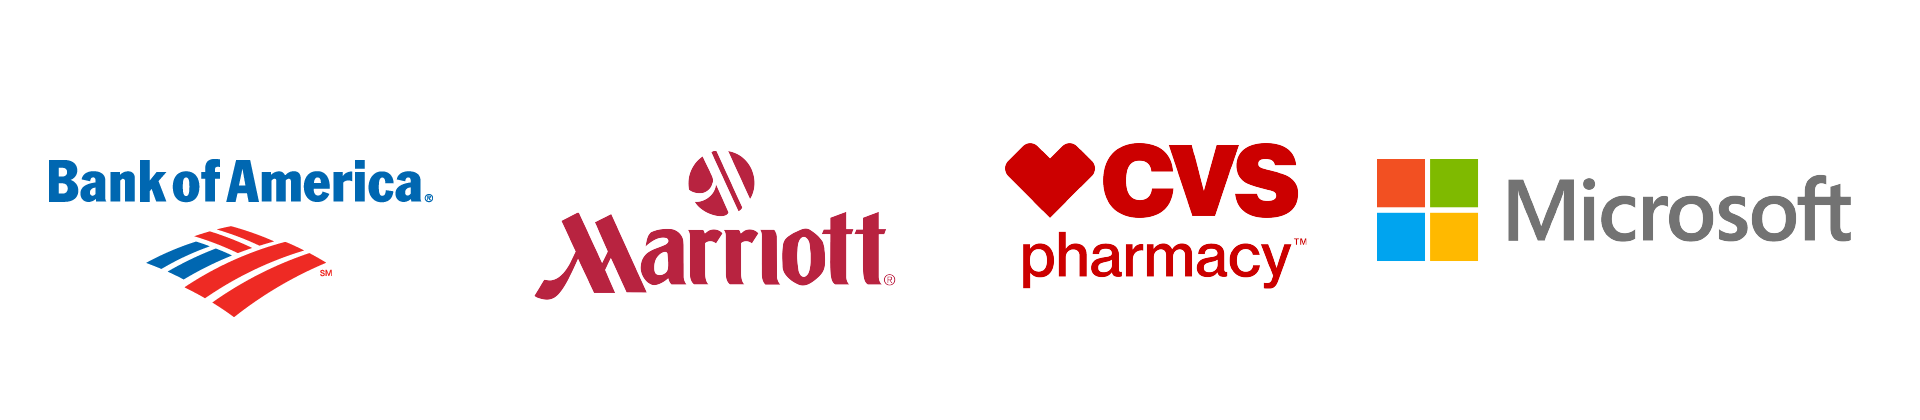 Logos for Bank of America, Marriott, CVS Pharmacy, and Microsoft